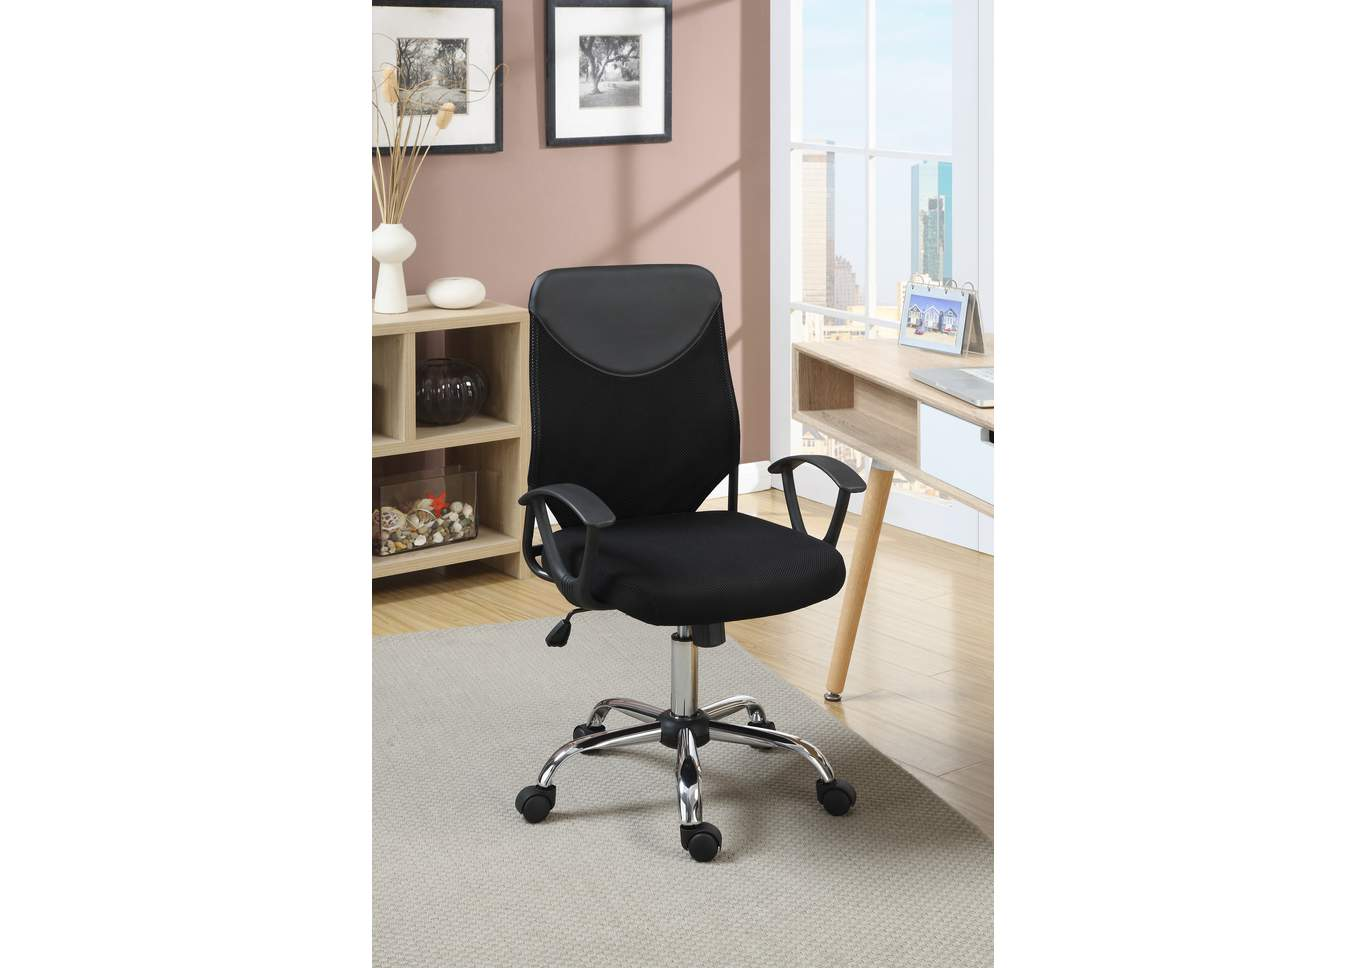 office chair comfort accessories ambulance chairs for stairs sarah furniture more houston tx black